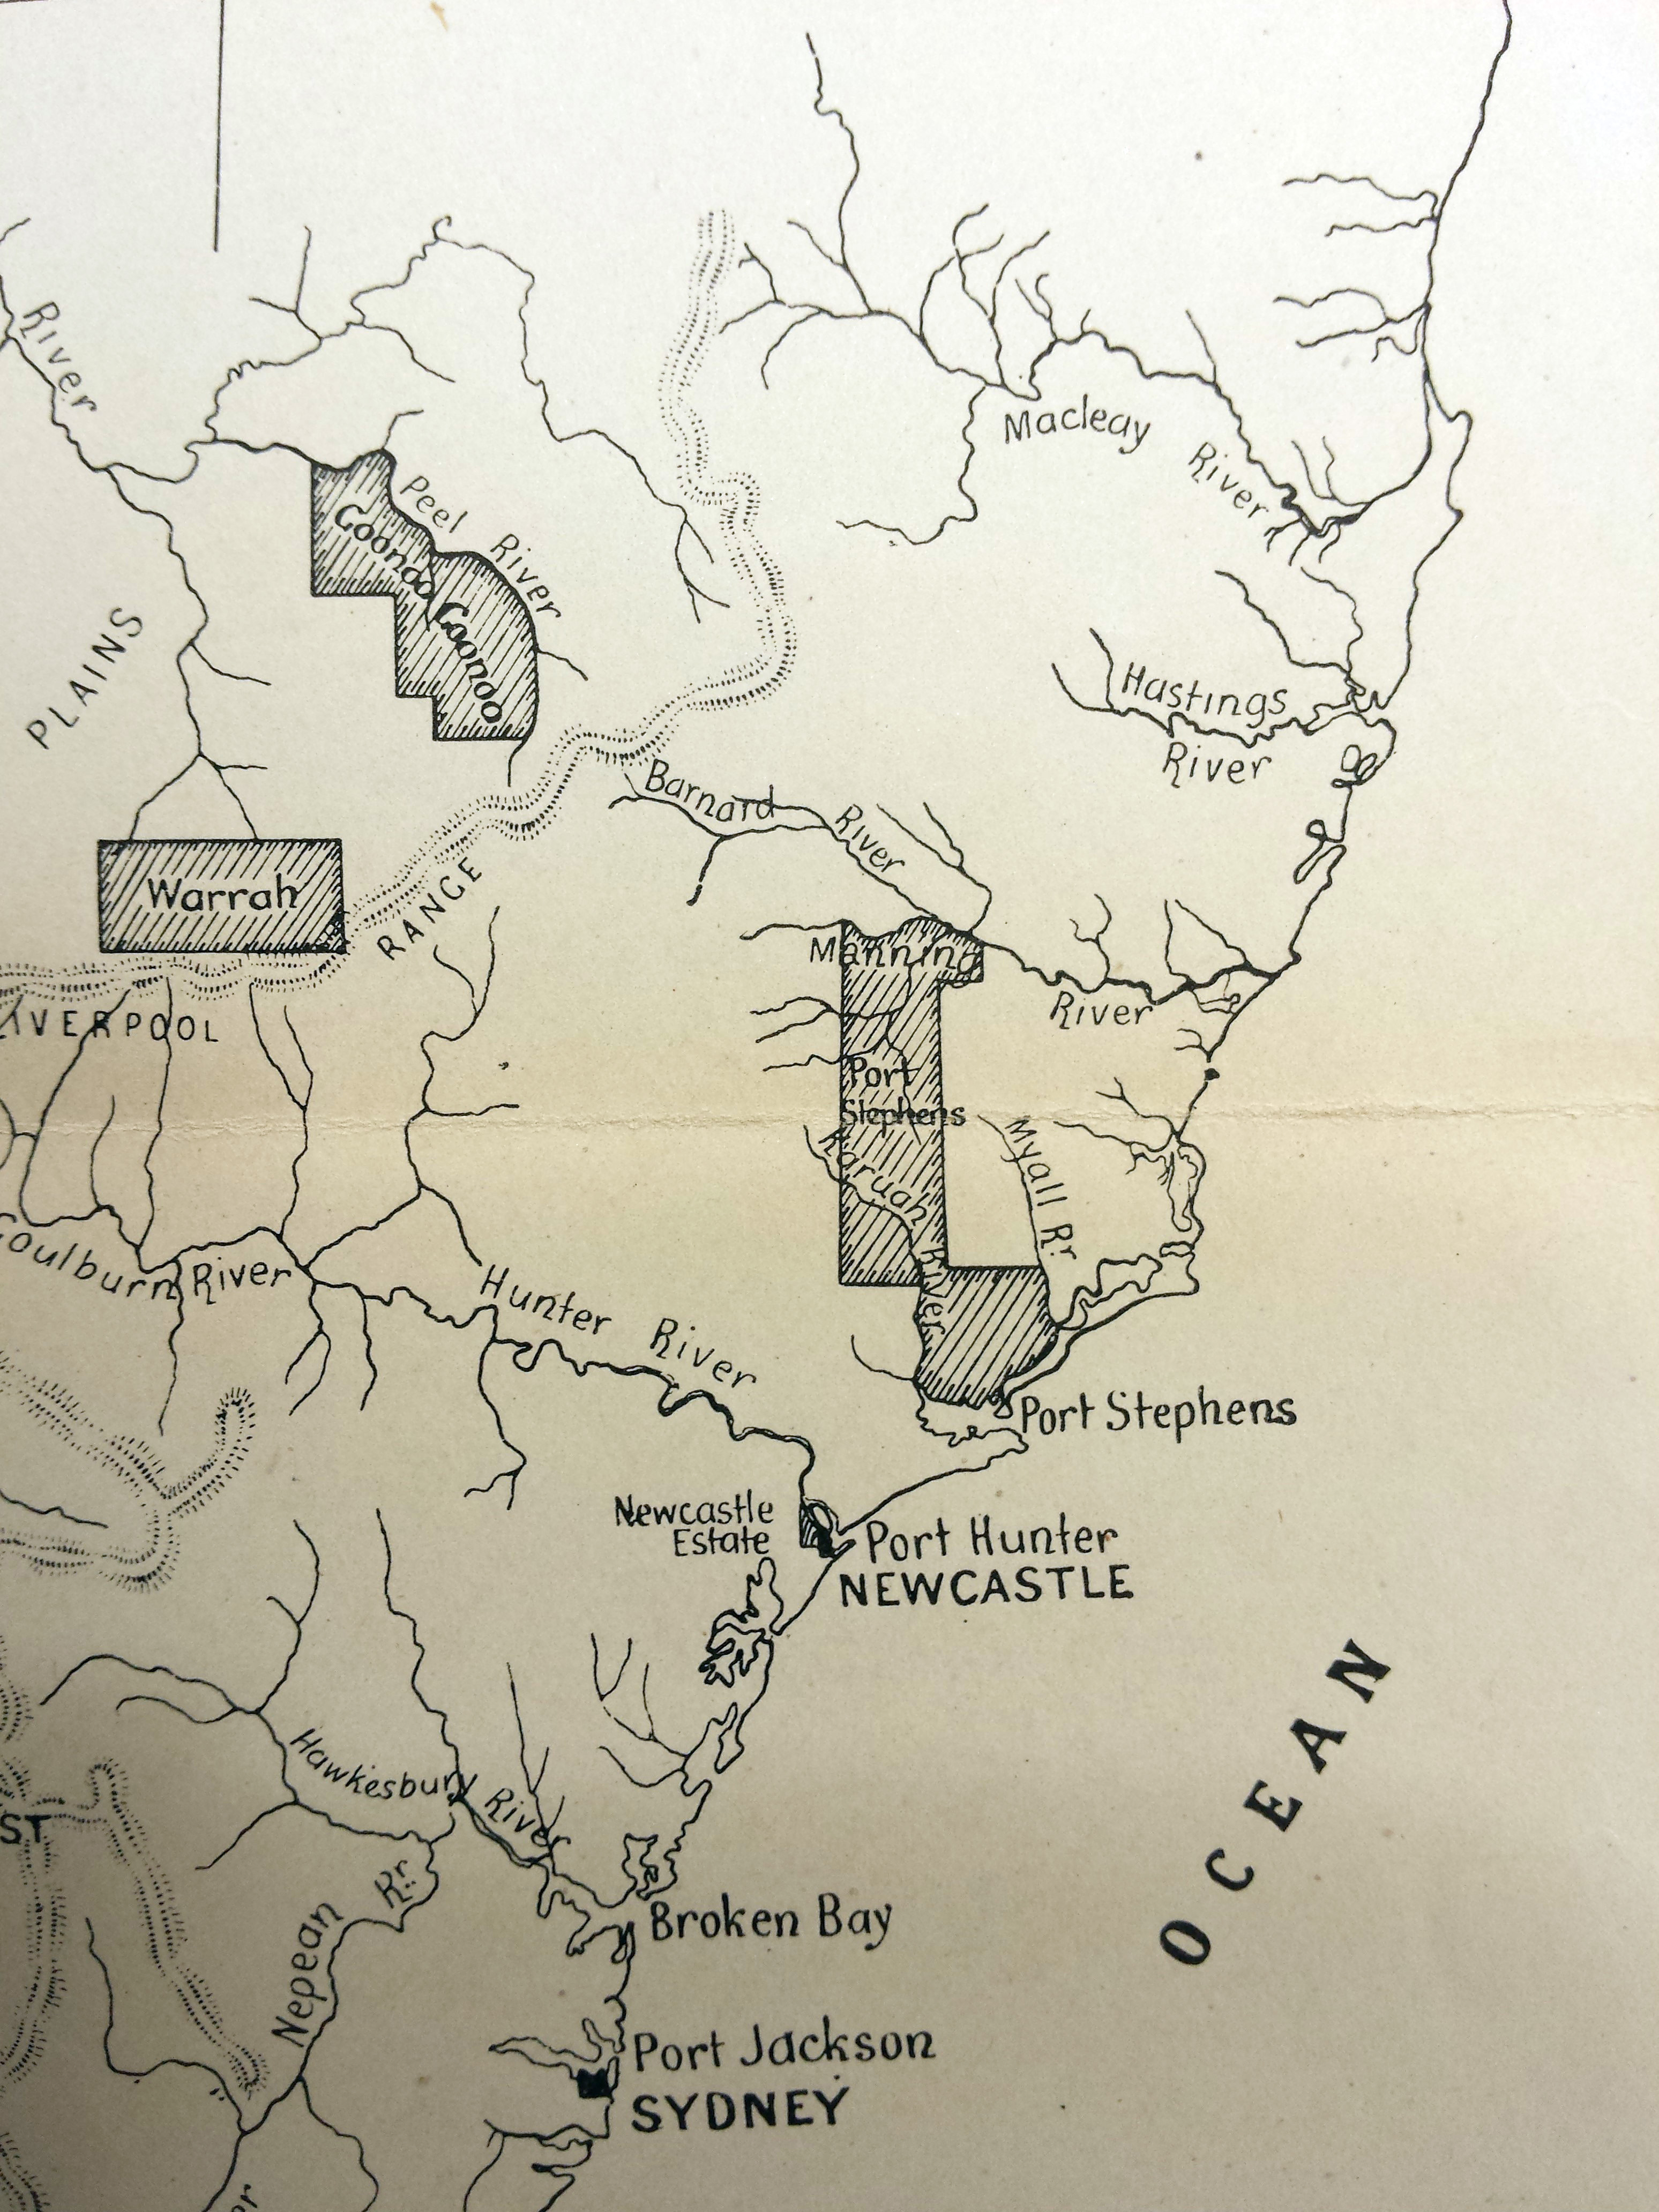 Map of Newcaslte & Port Stephens area. nd. [insert]